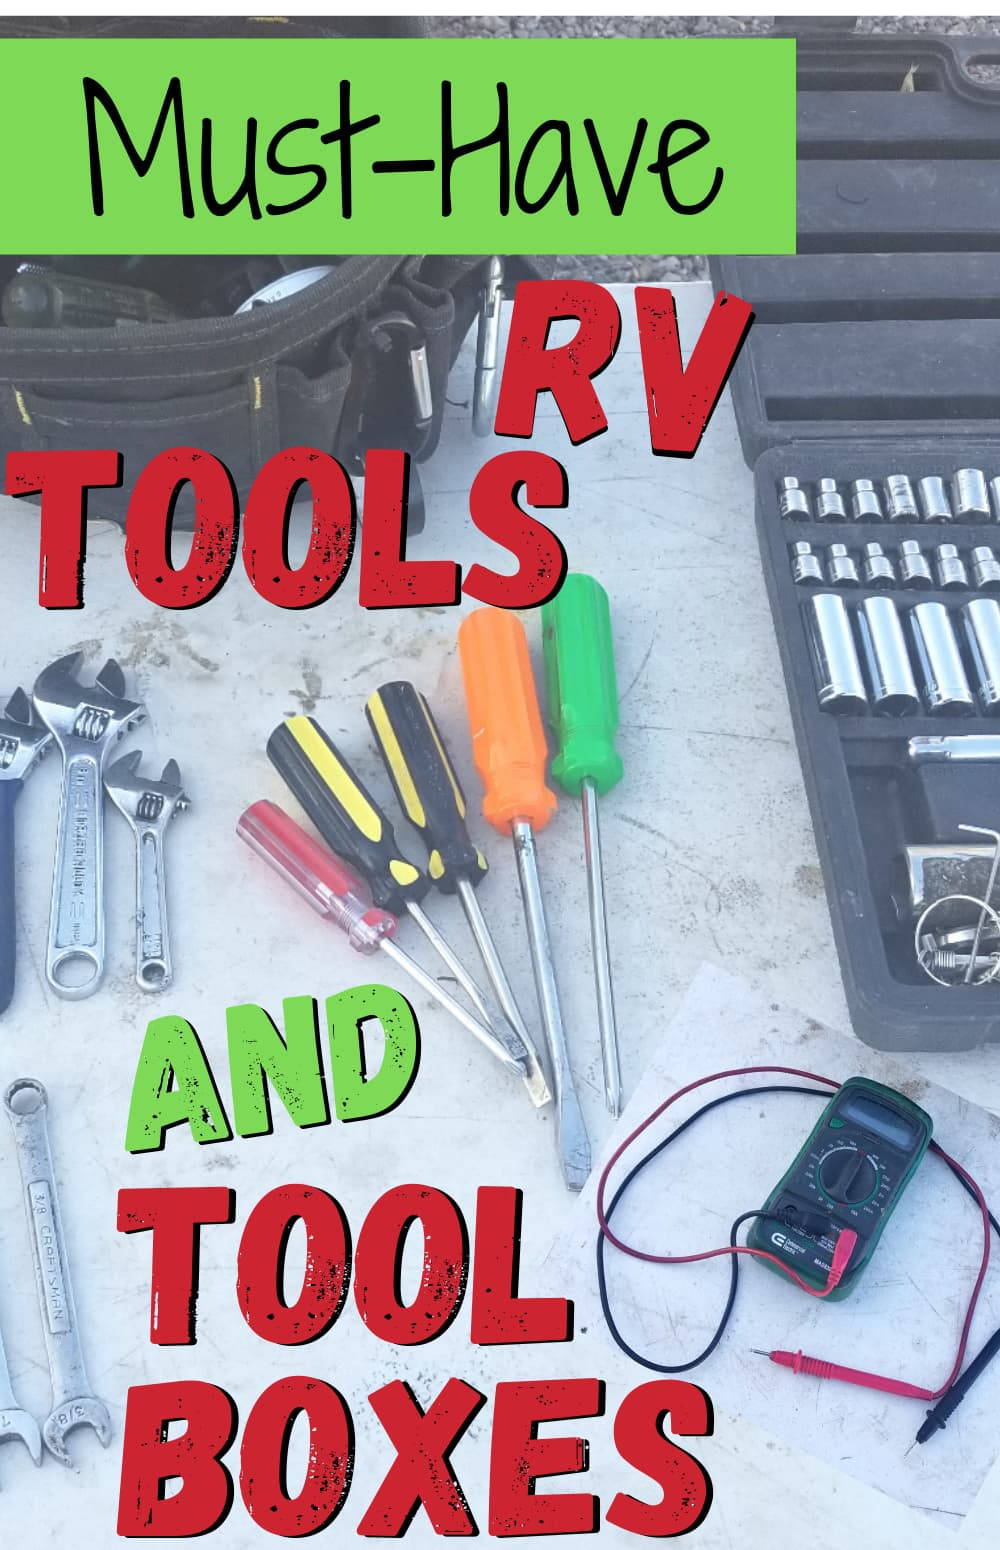 Must-Have RV Tools: 10 Items Every RVer Needs In Their RV Toolbox (Advice From Someone Who\'s Been RVing Over 50 Years!)